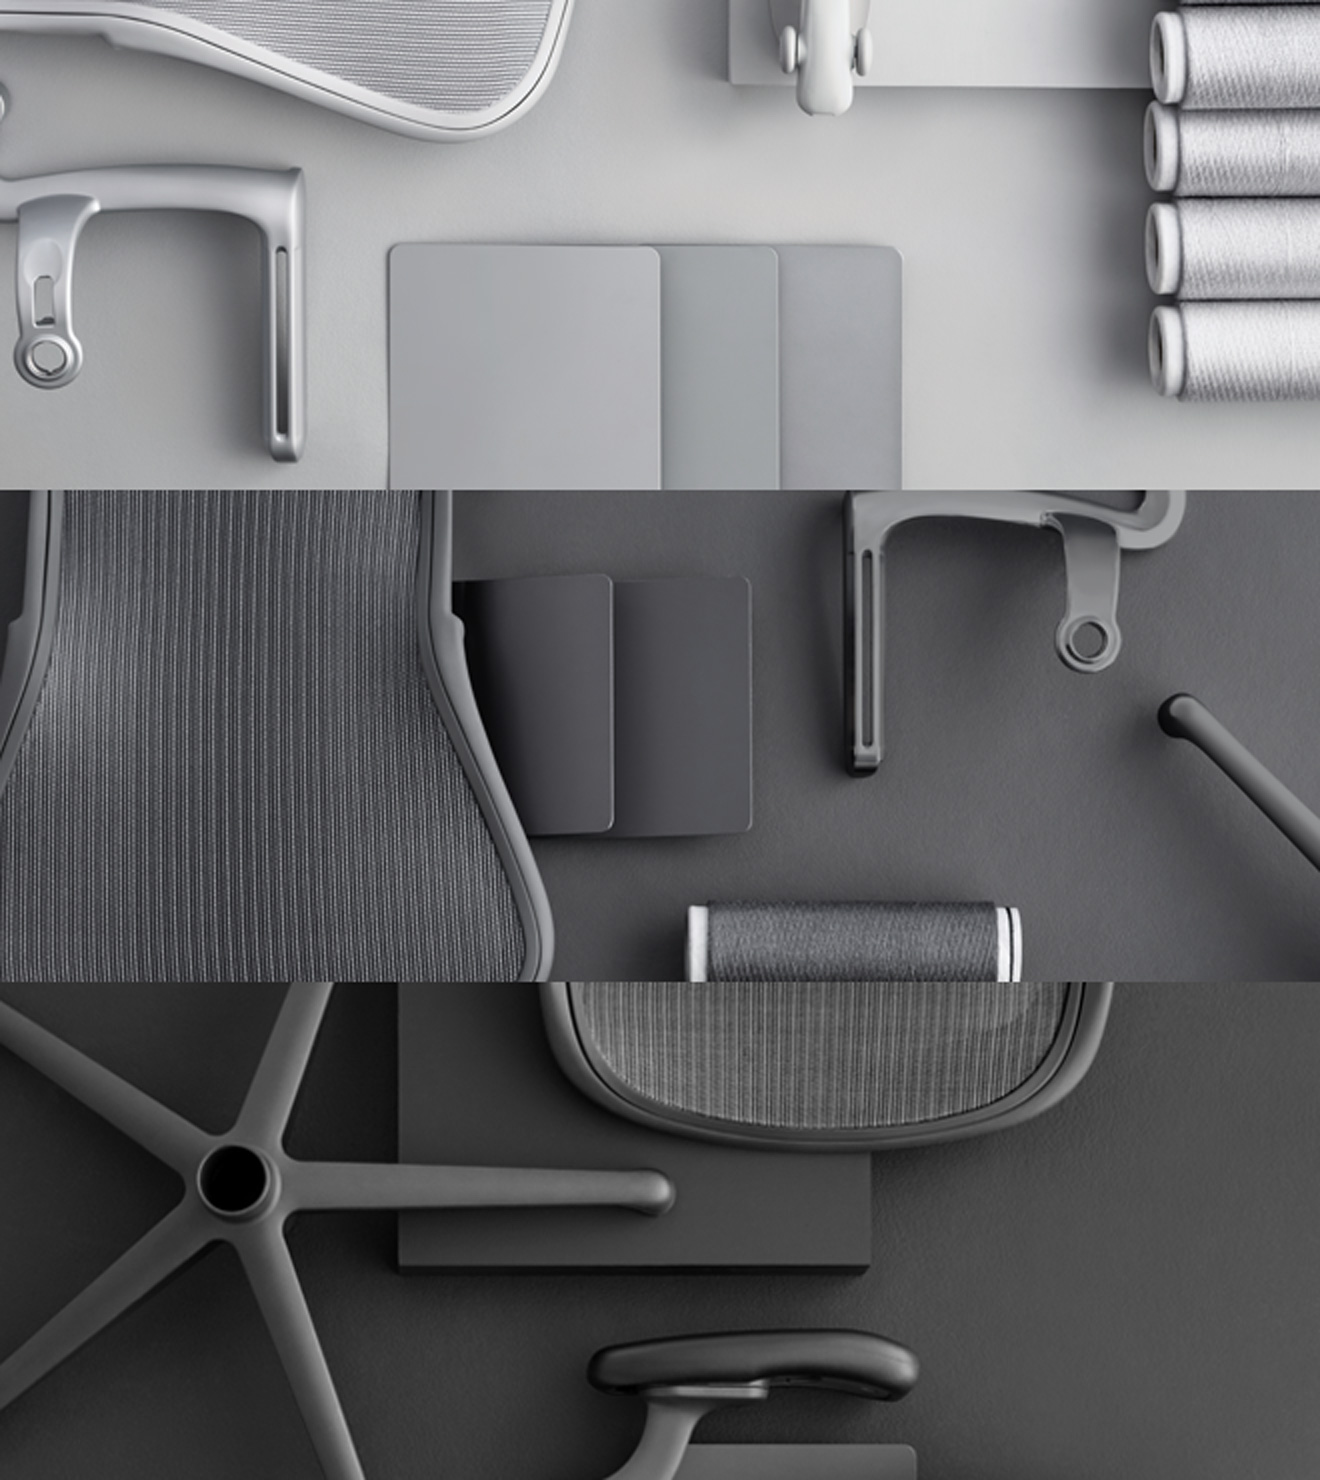 Aeron - A broad colour palette